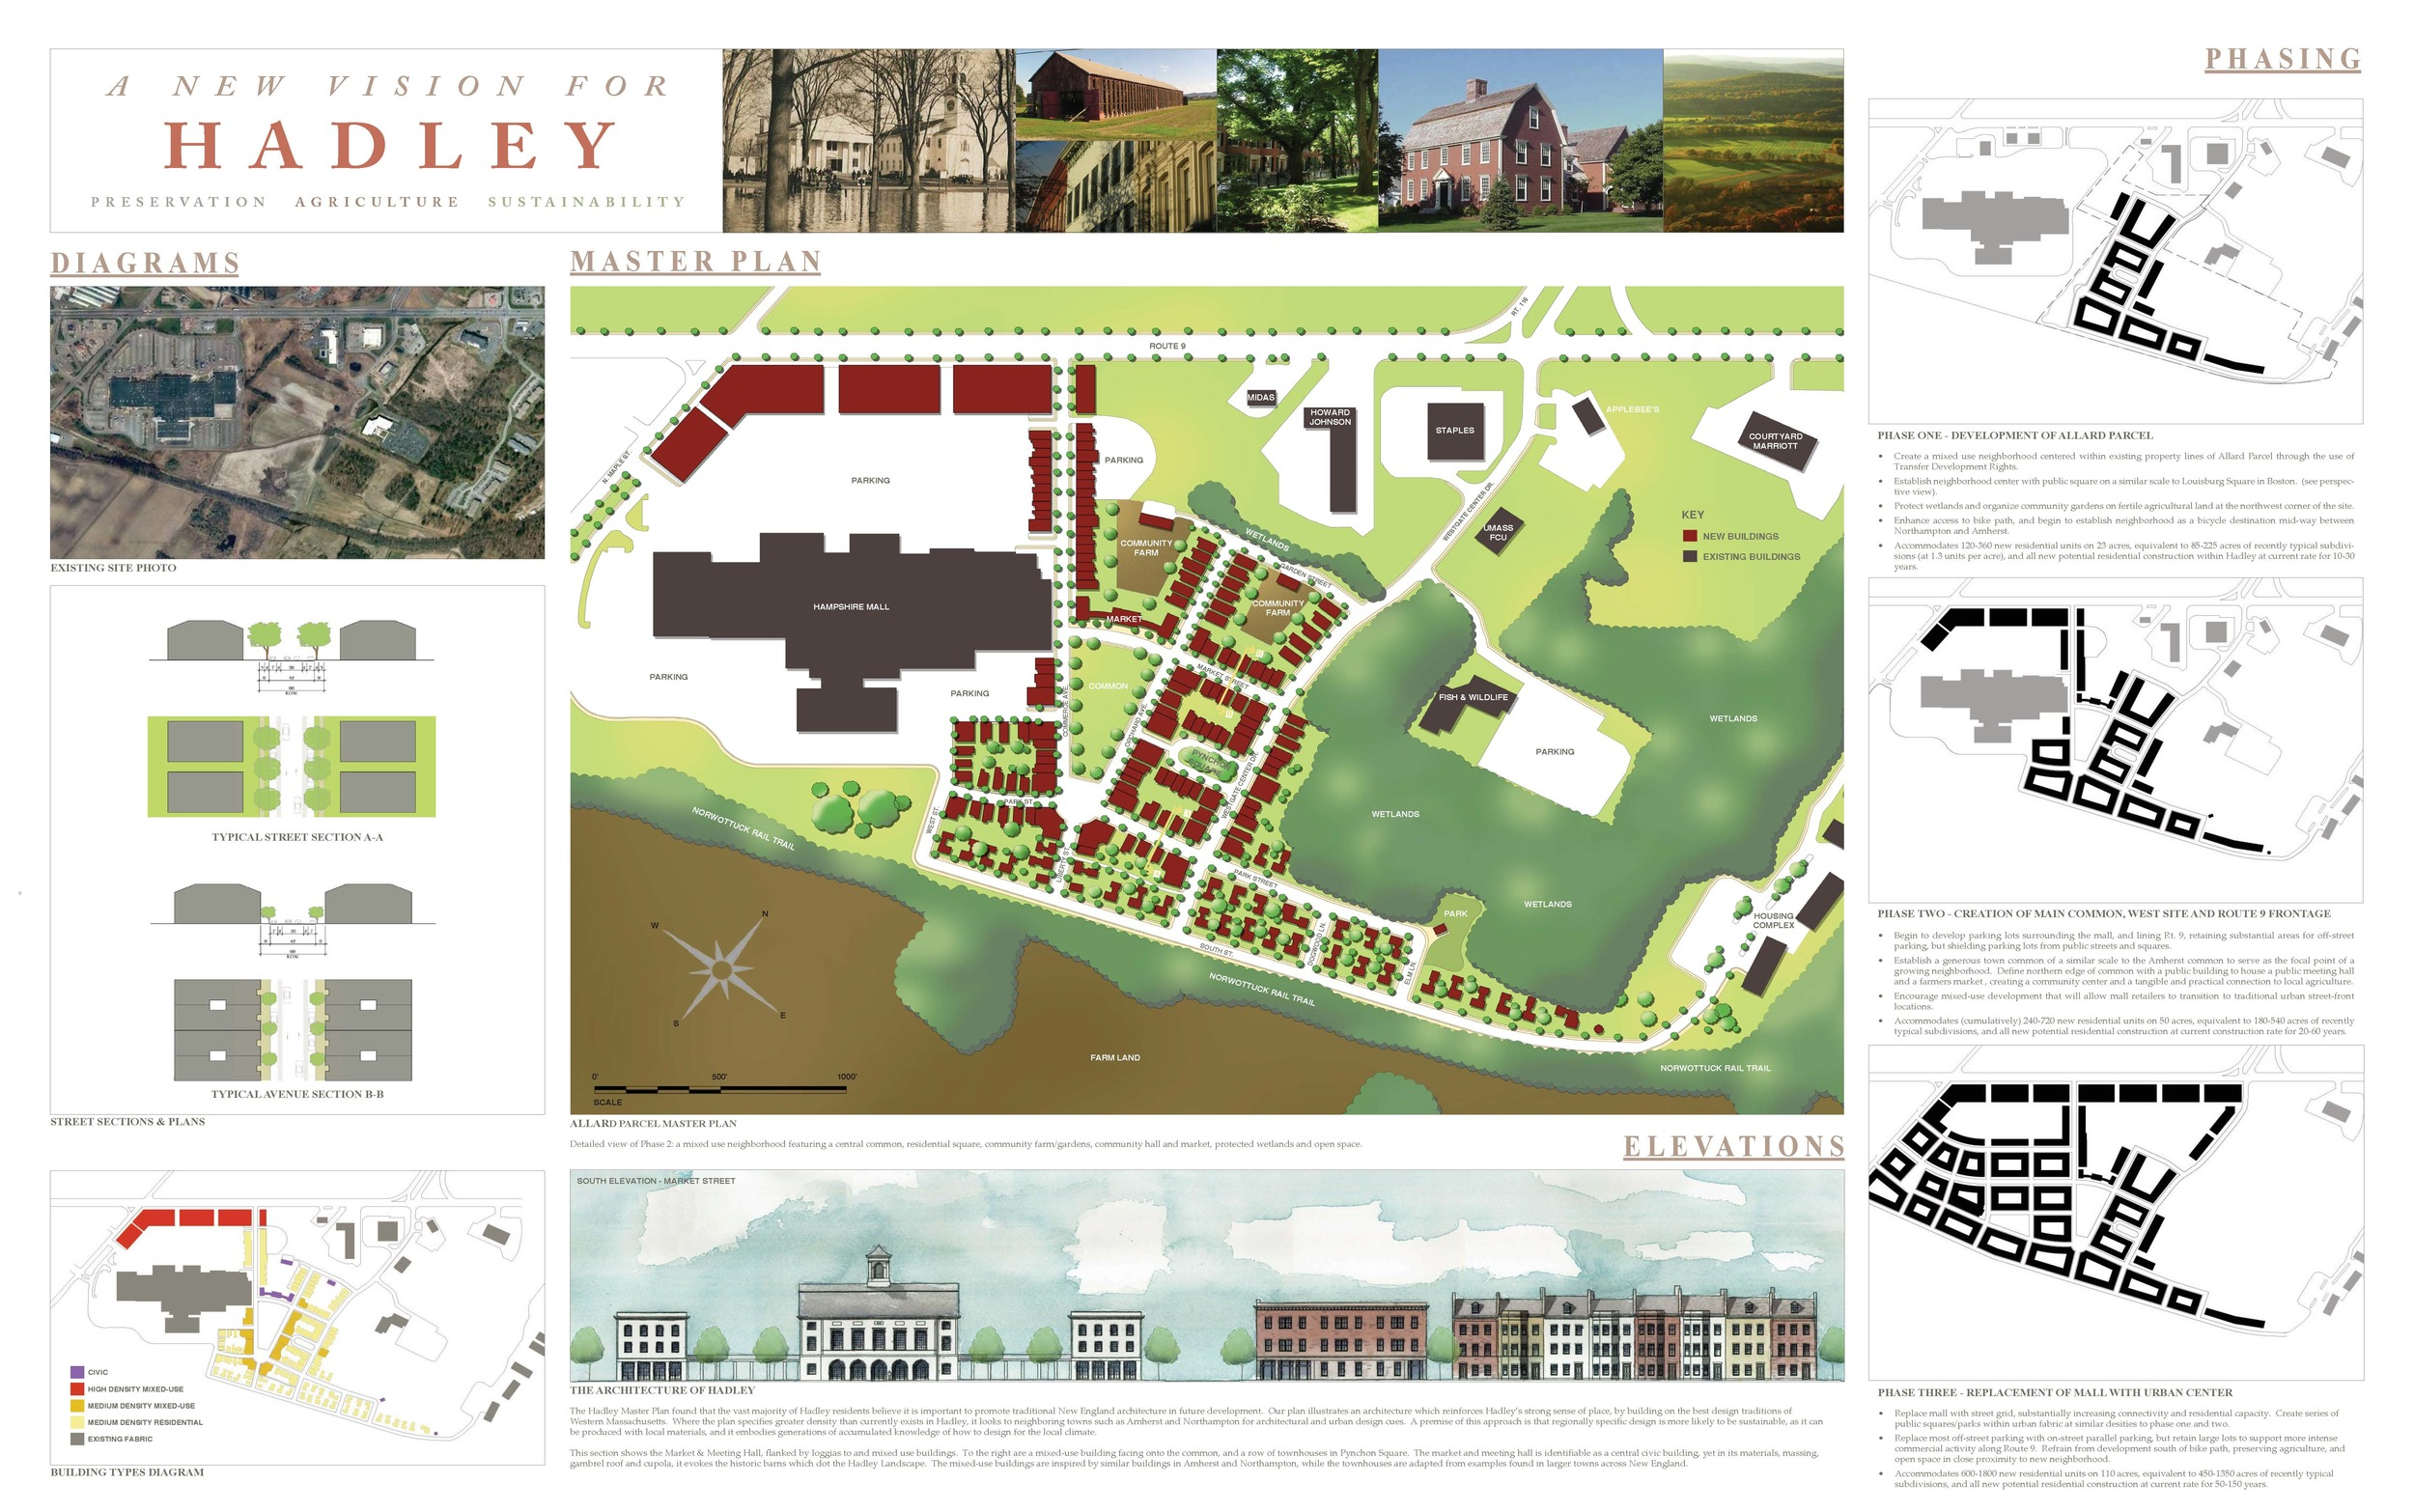 hadley_urban_final_presentation_kirley_board_1.jpg